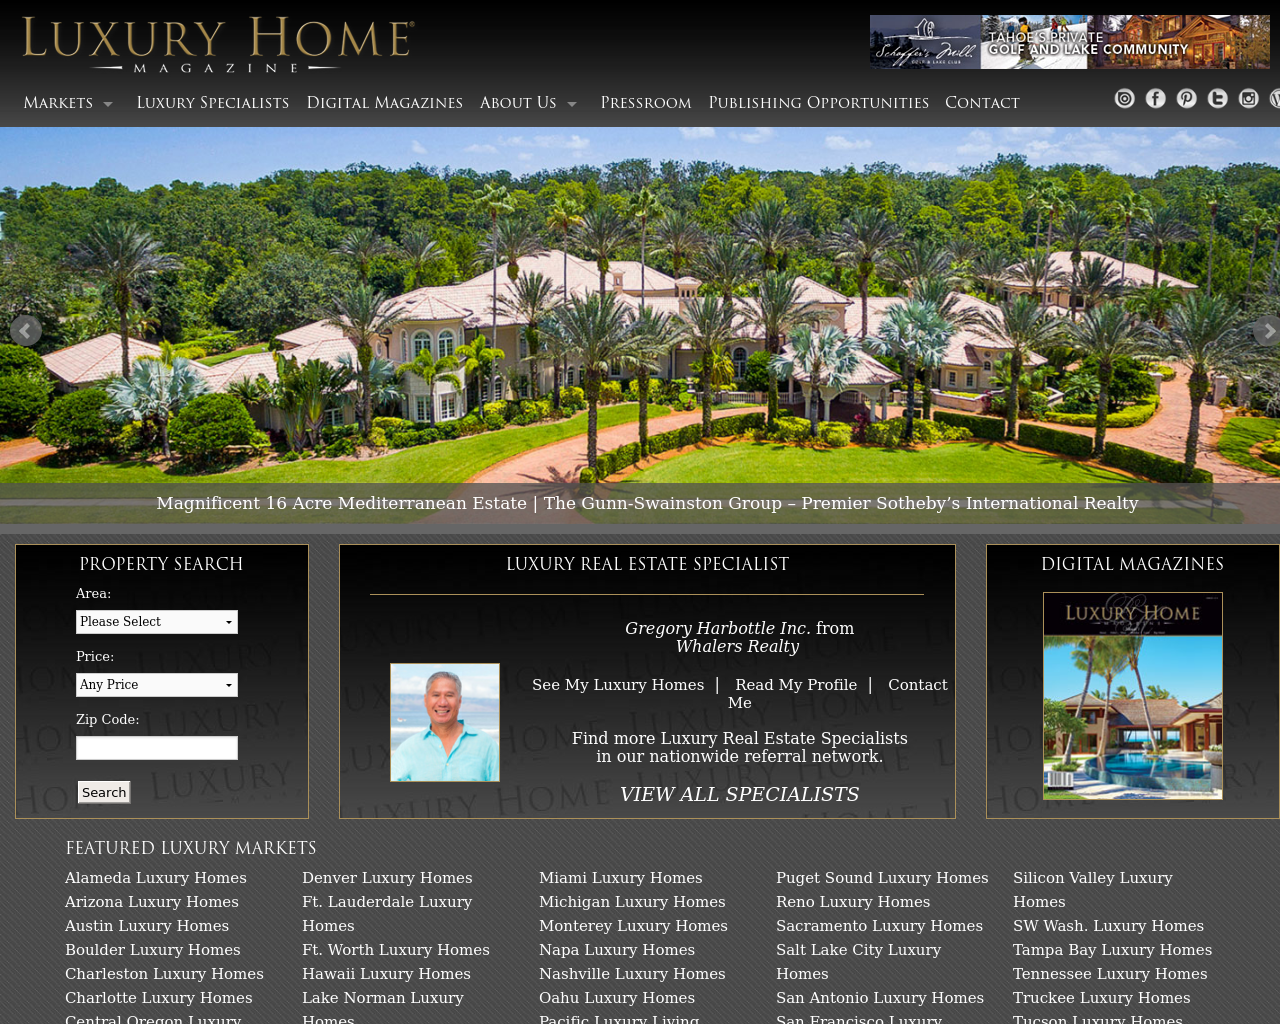 Luxuryhomemagazine-Advertising-Reviews-Pricing